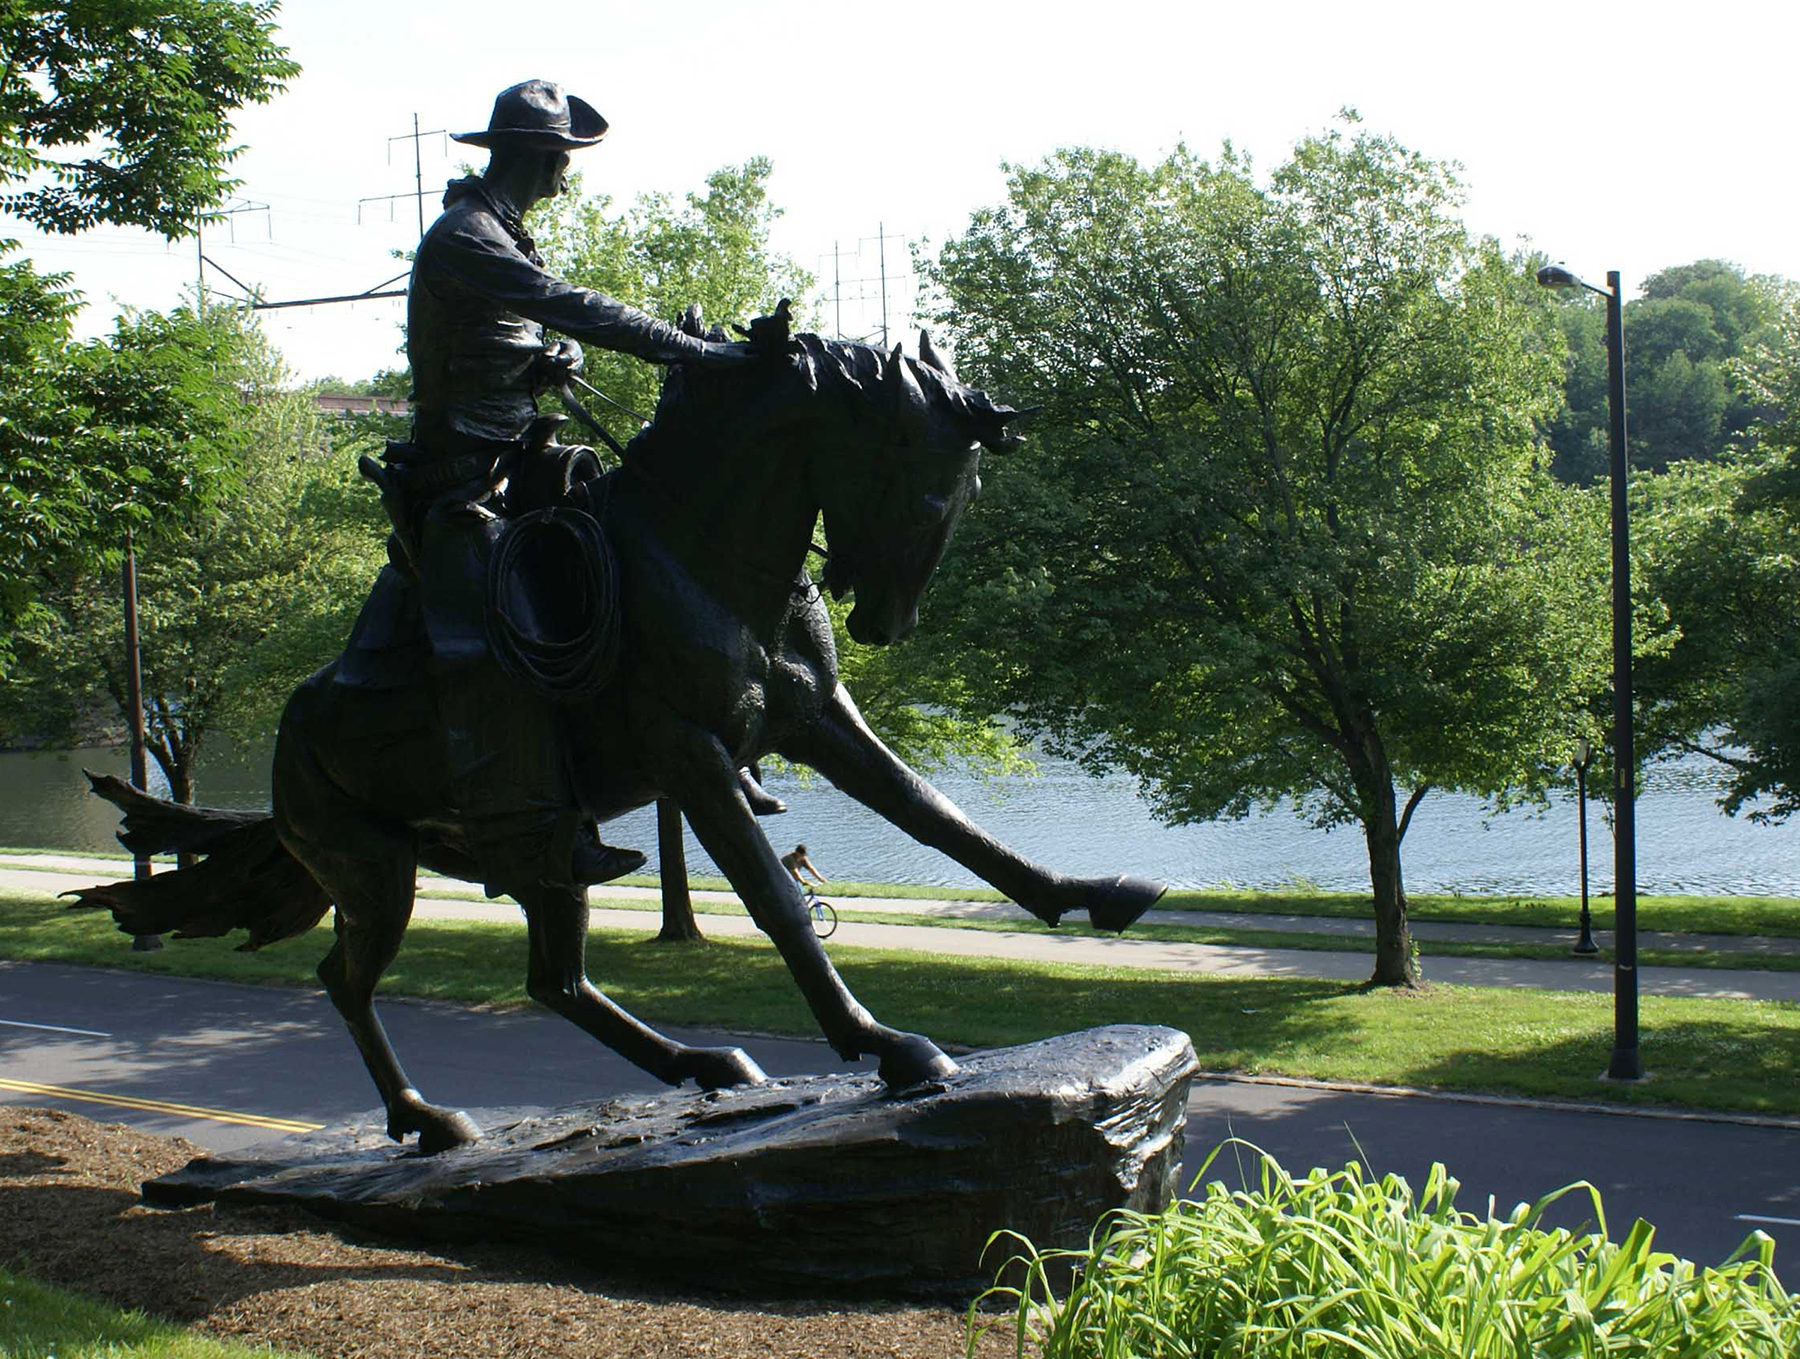 Frederic Remington's Cowboy sculpture looking out toward the Schuylkill River